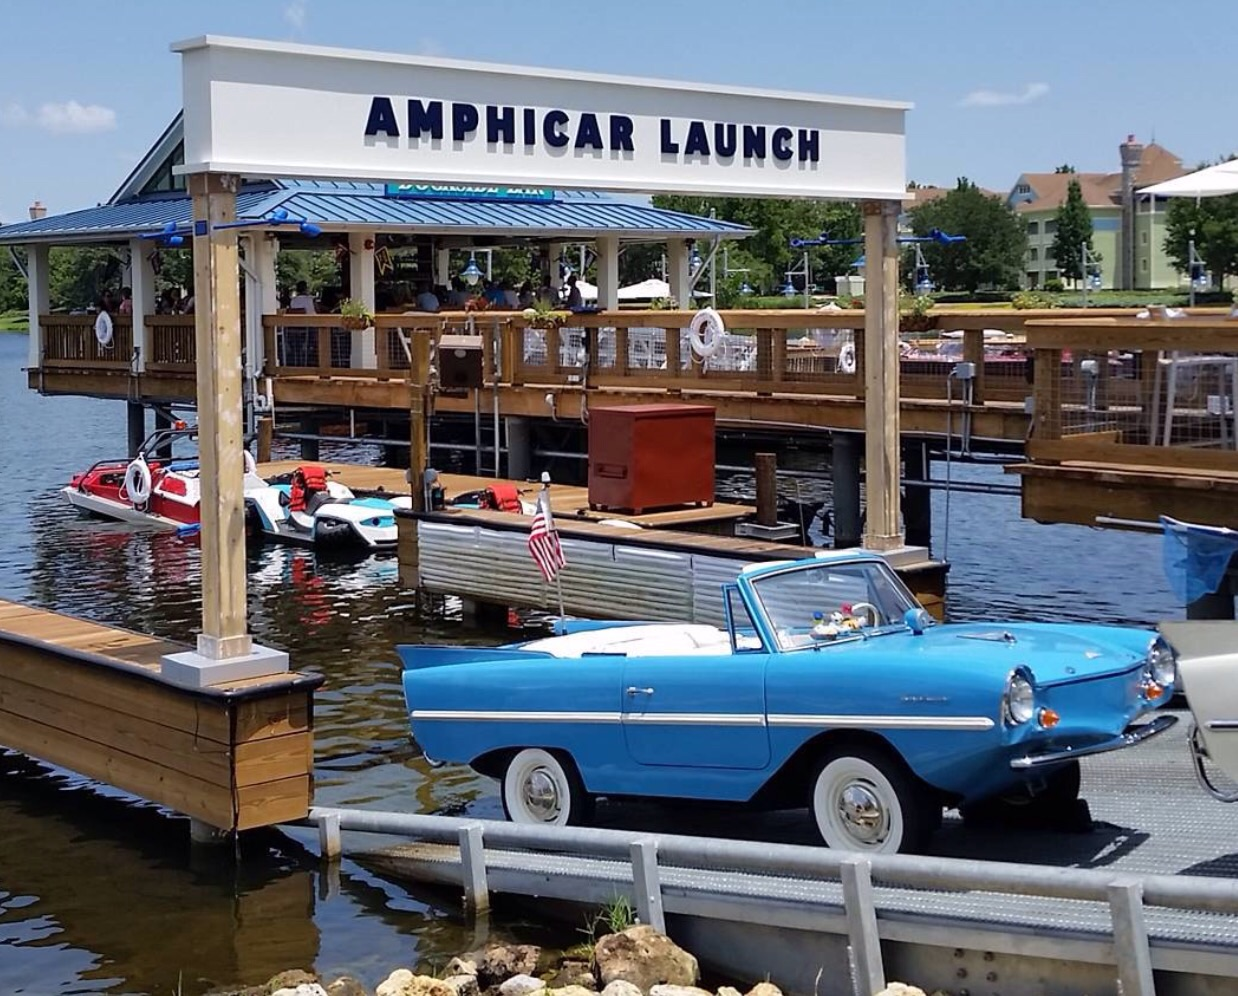 Amphbicar Makes A Splash At The Boat House in Downtown Disney at WDW